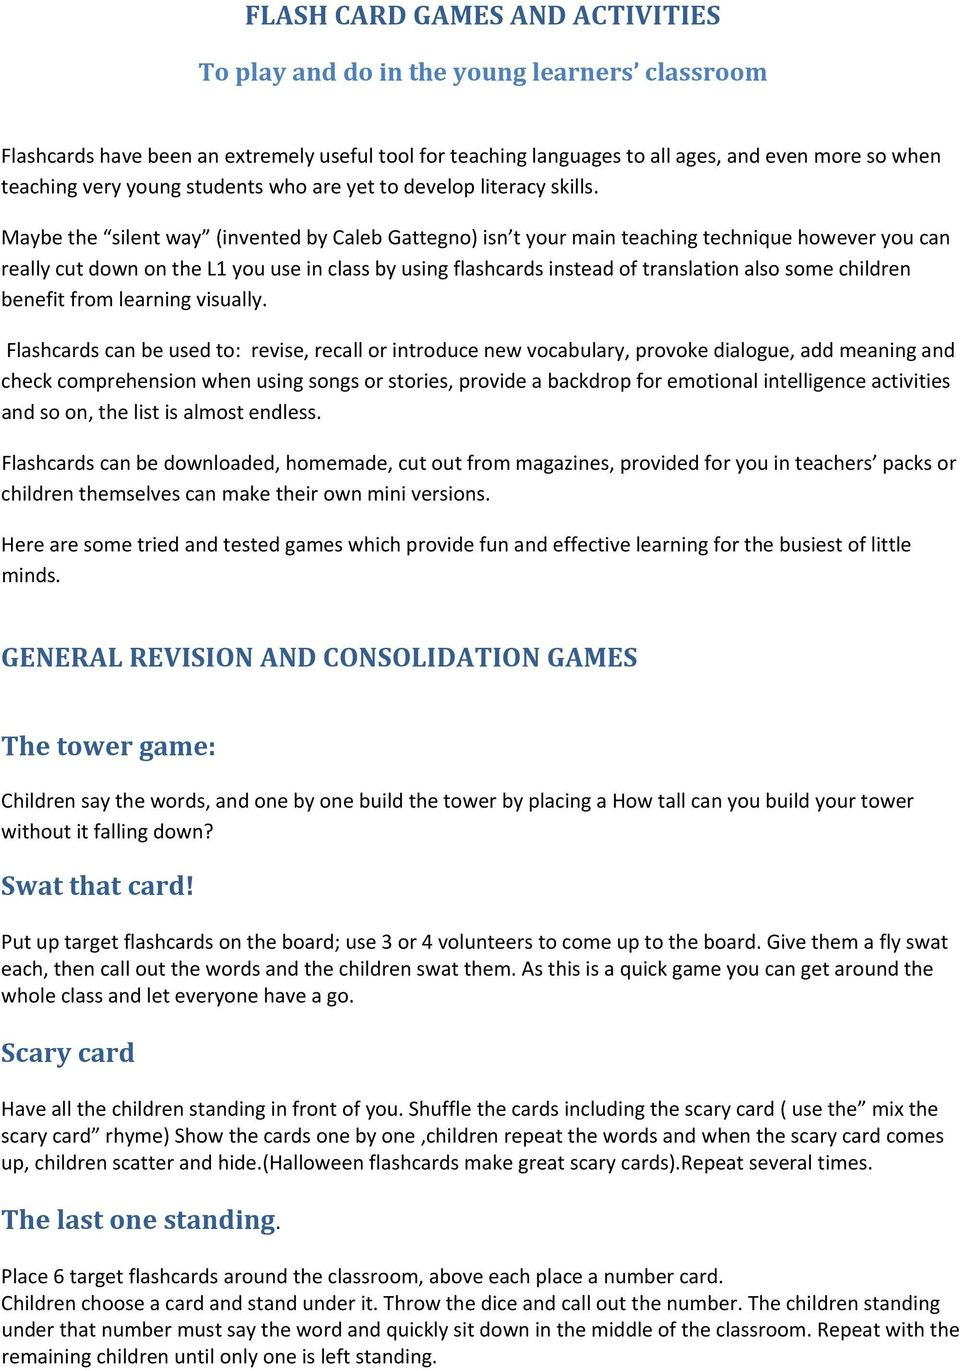 Flashcard games and activities CONNIE HATWELL - PDF